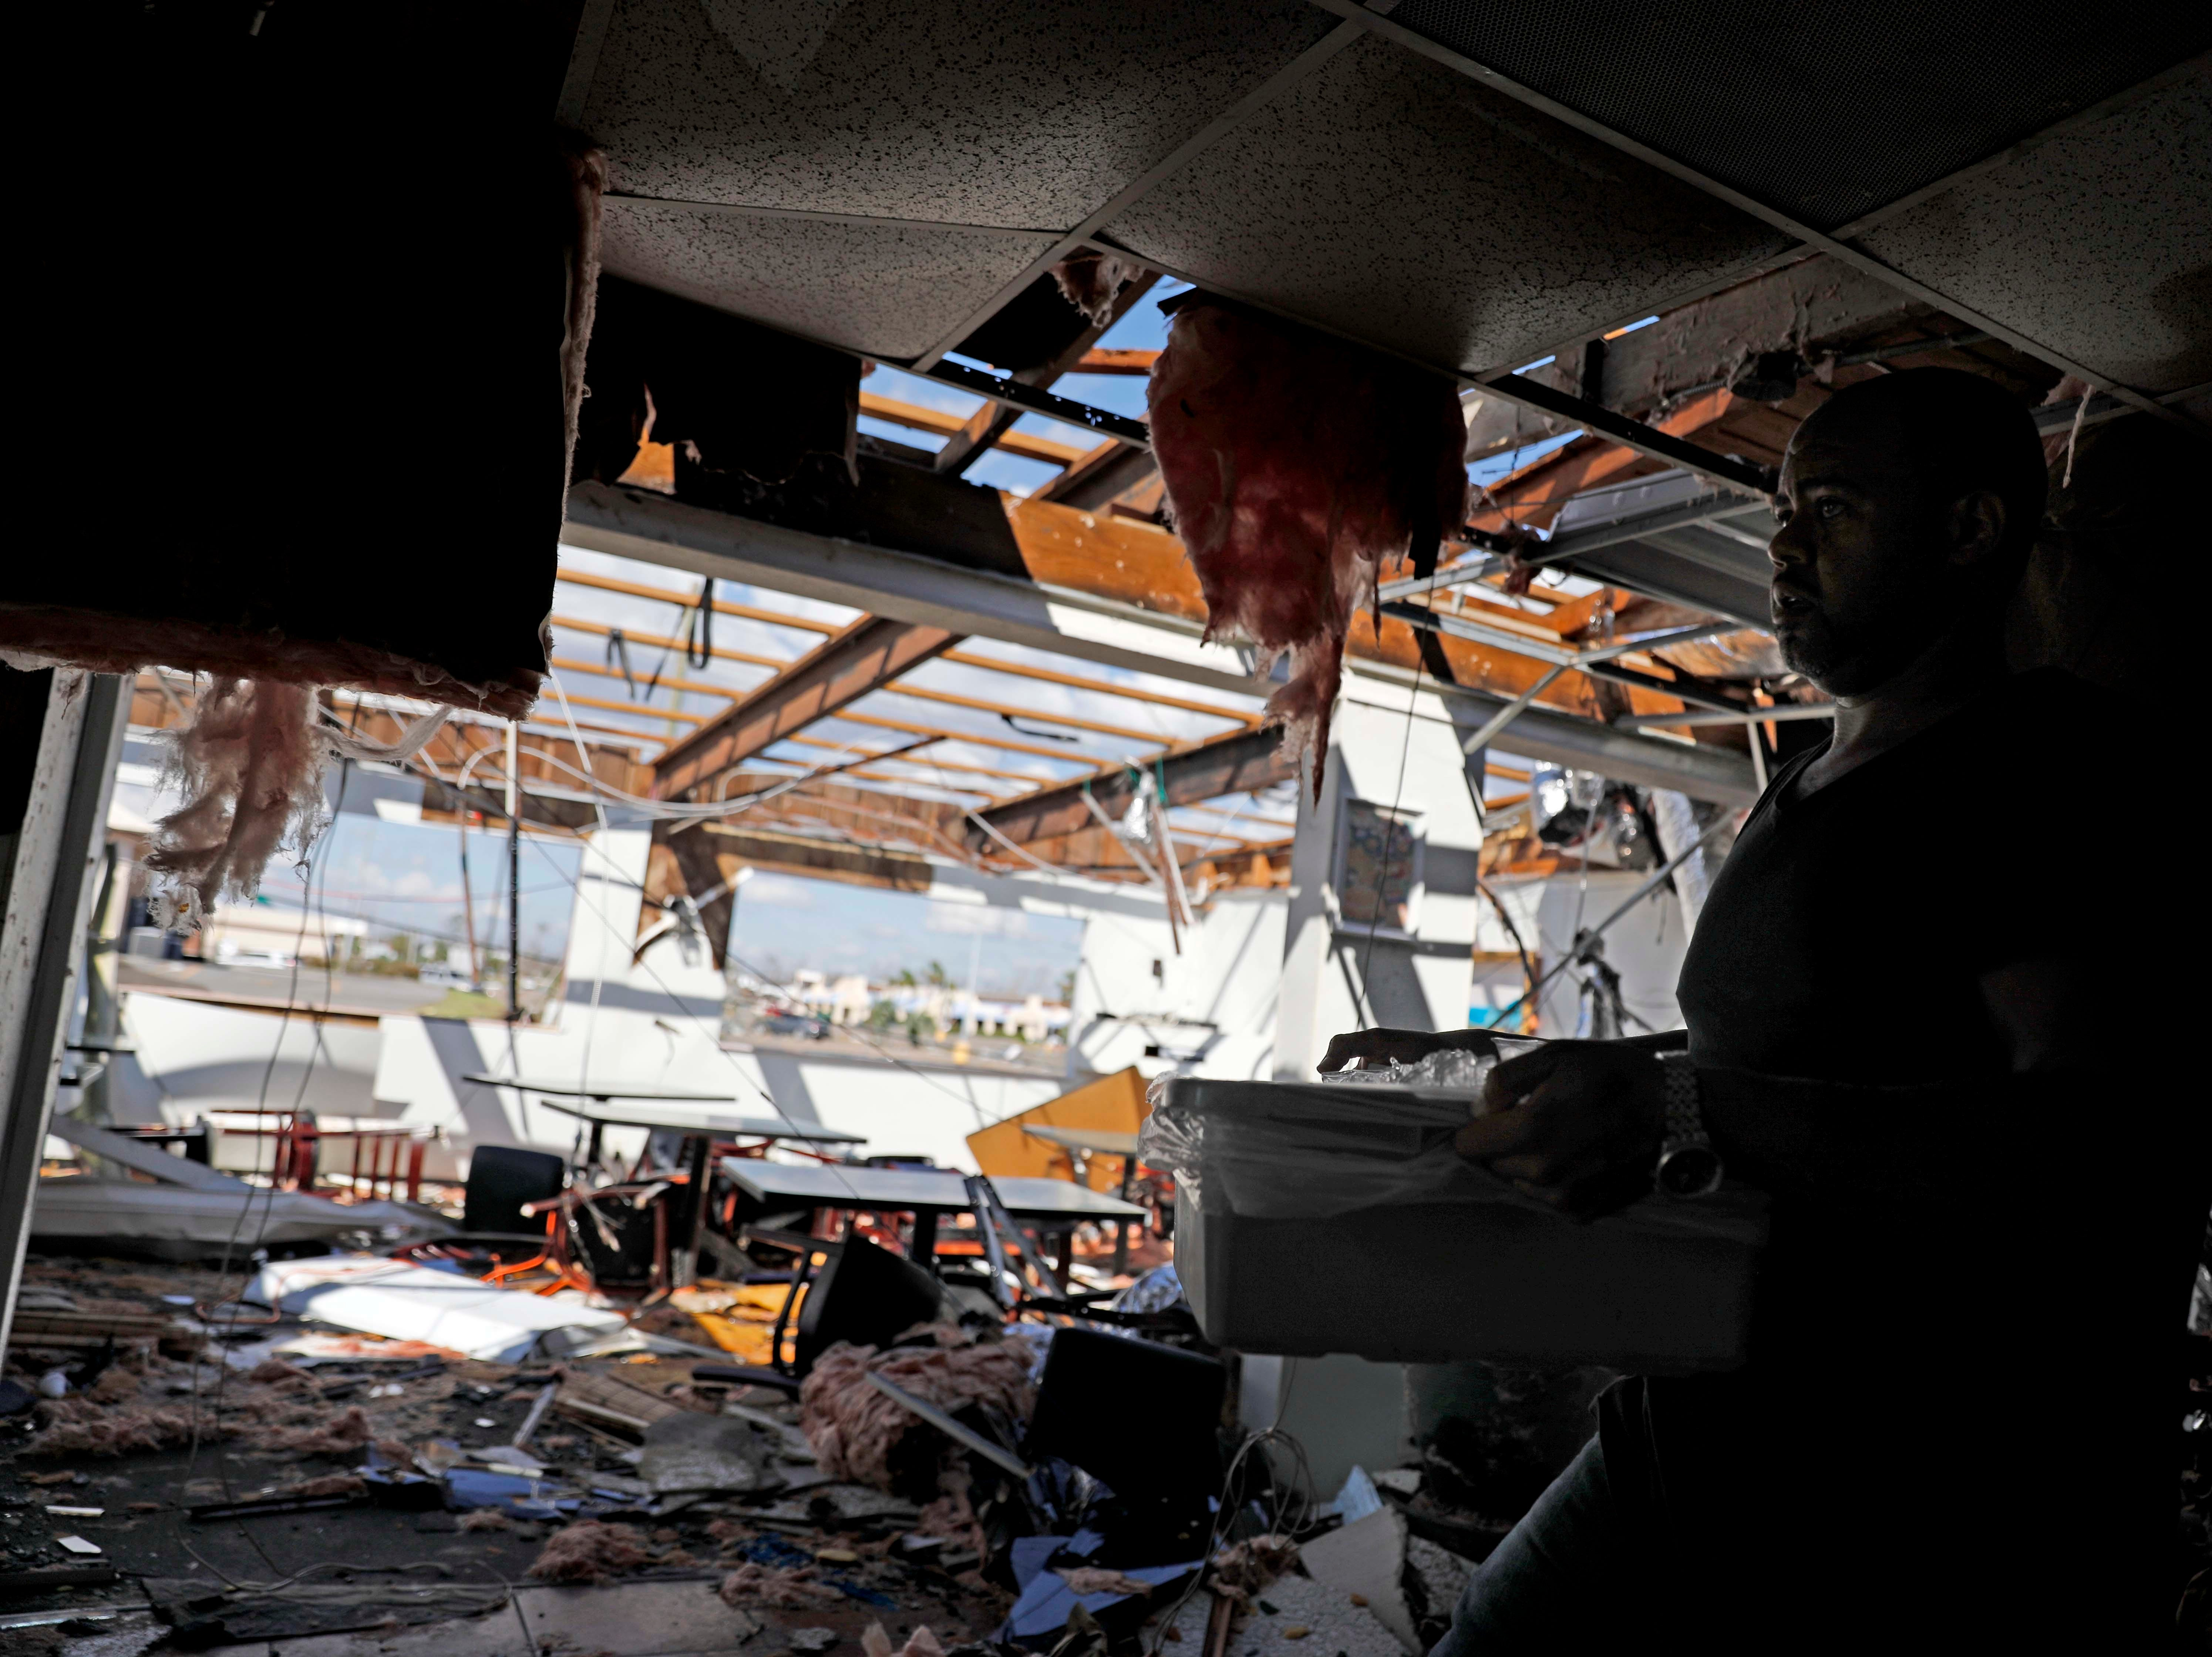 Matthew Washington carries out ice while retrieving salvageable items from the damaged Thai restaurant he owns with his wife in the aftermath of hurricane Michael in Callaway, Fla., Thursday, Oct. 11, 2018. (AP Photo/David Goldman)